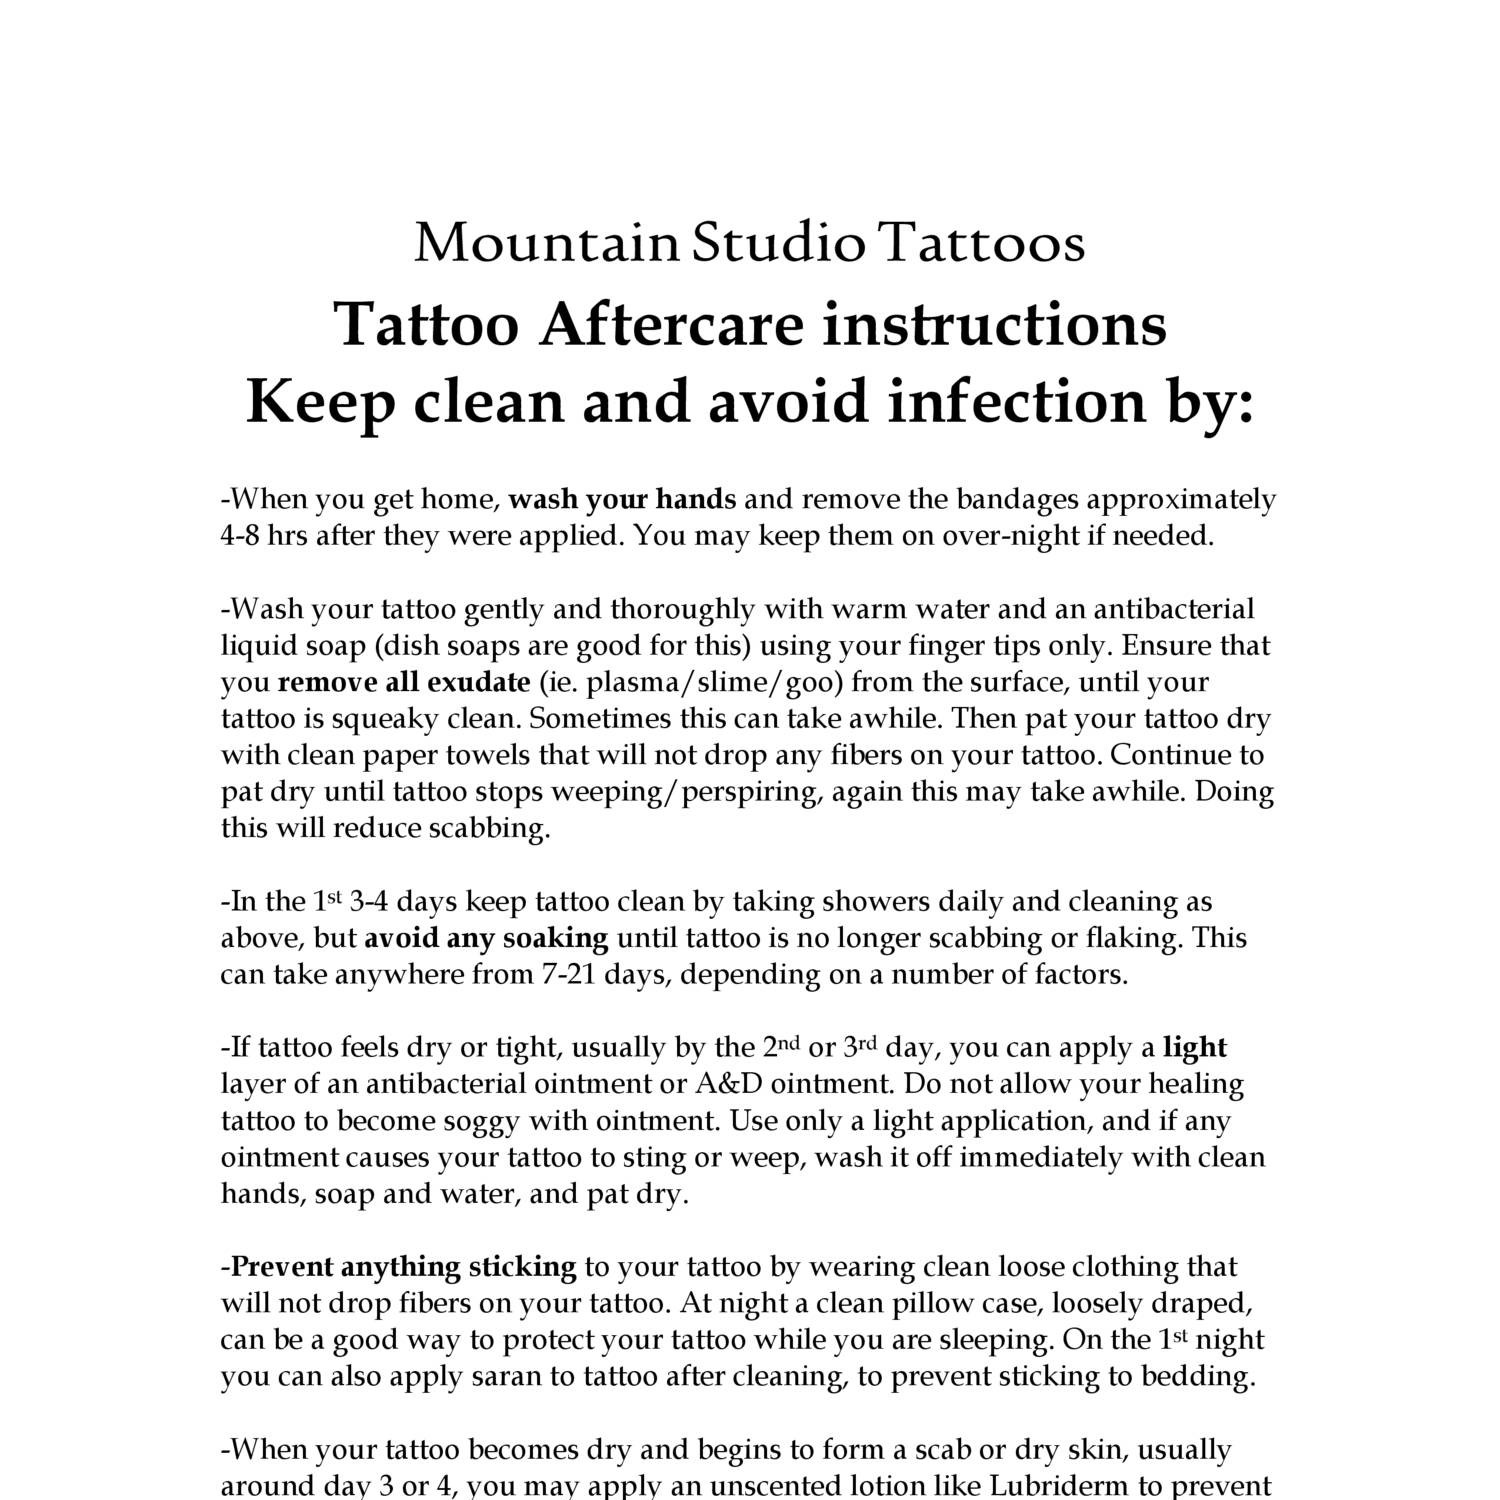 Mountain Studio Tattoos Aftercare Doc Docdroid